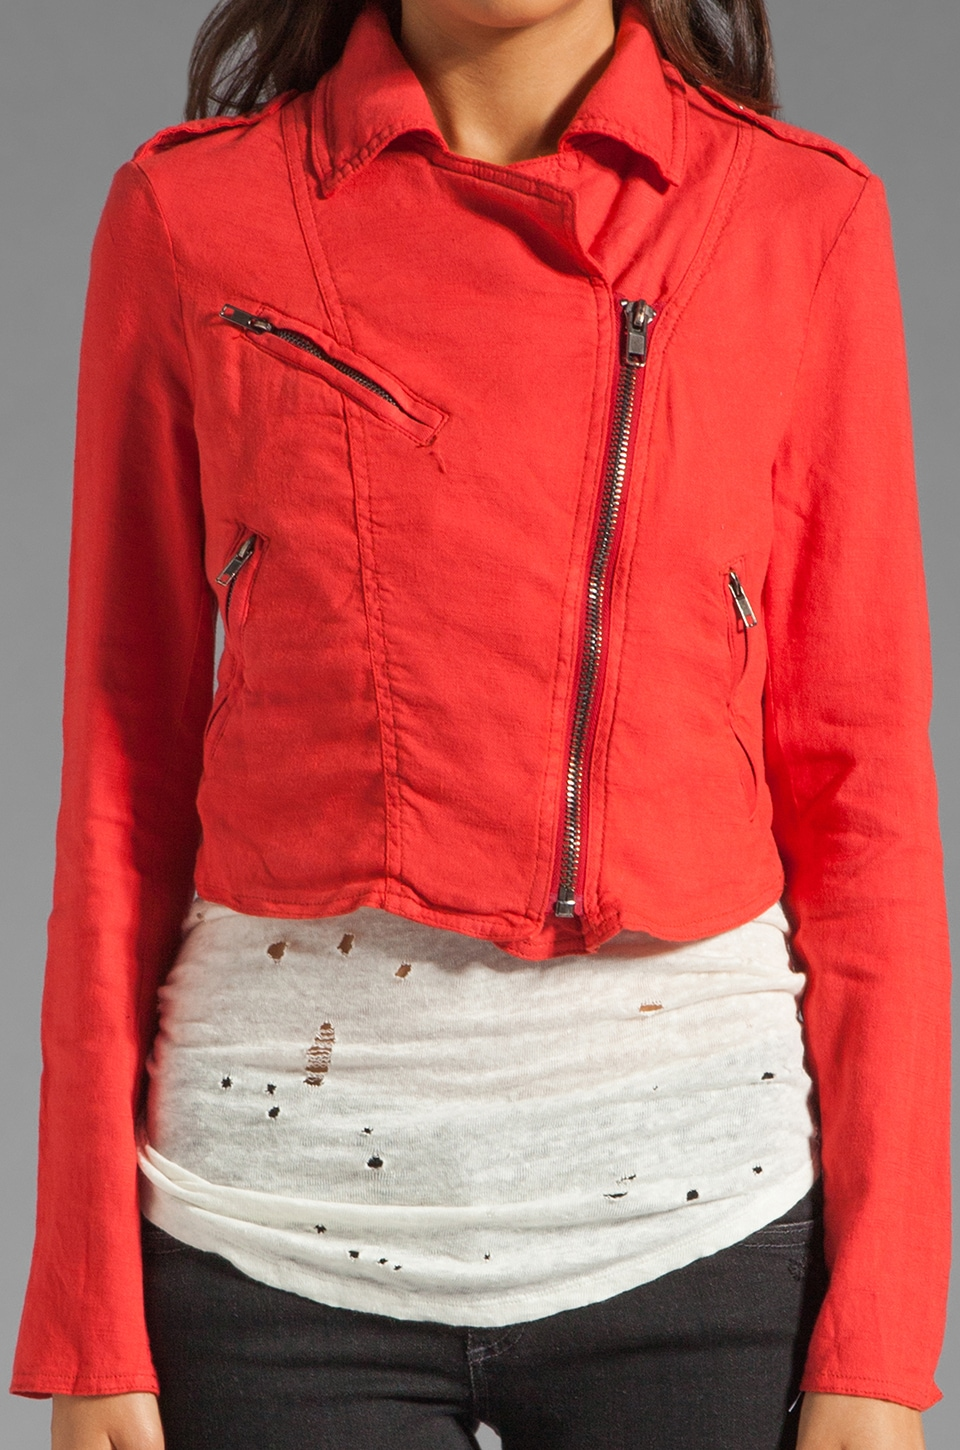 Free People Linen Moto Jacket in Cherry